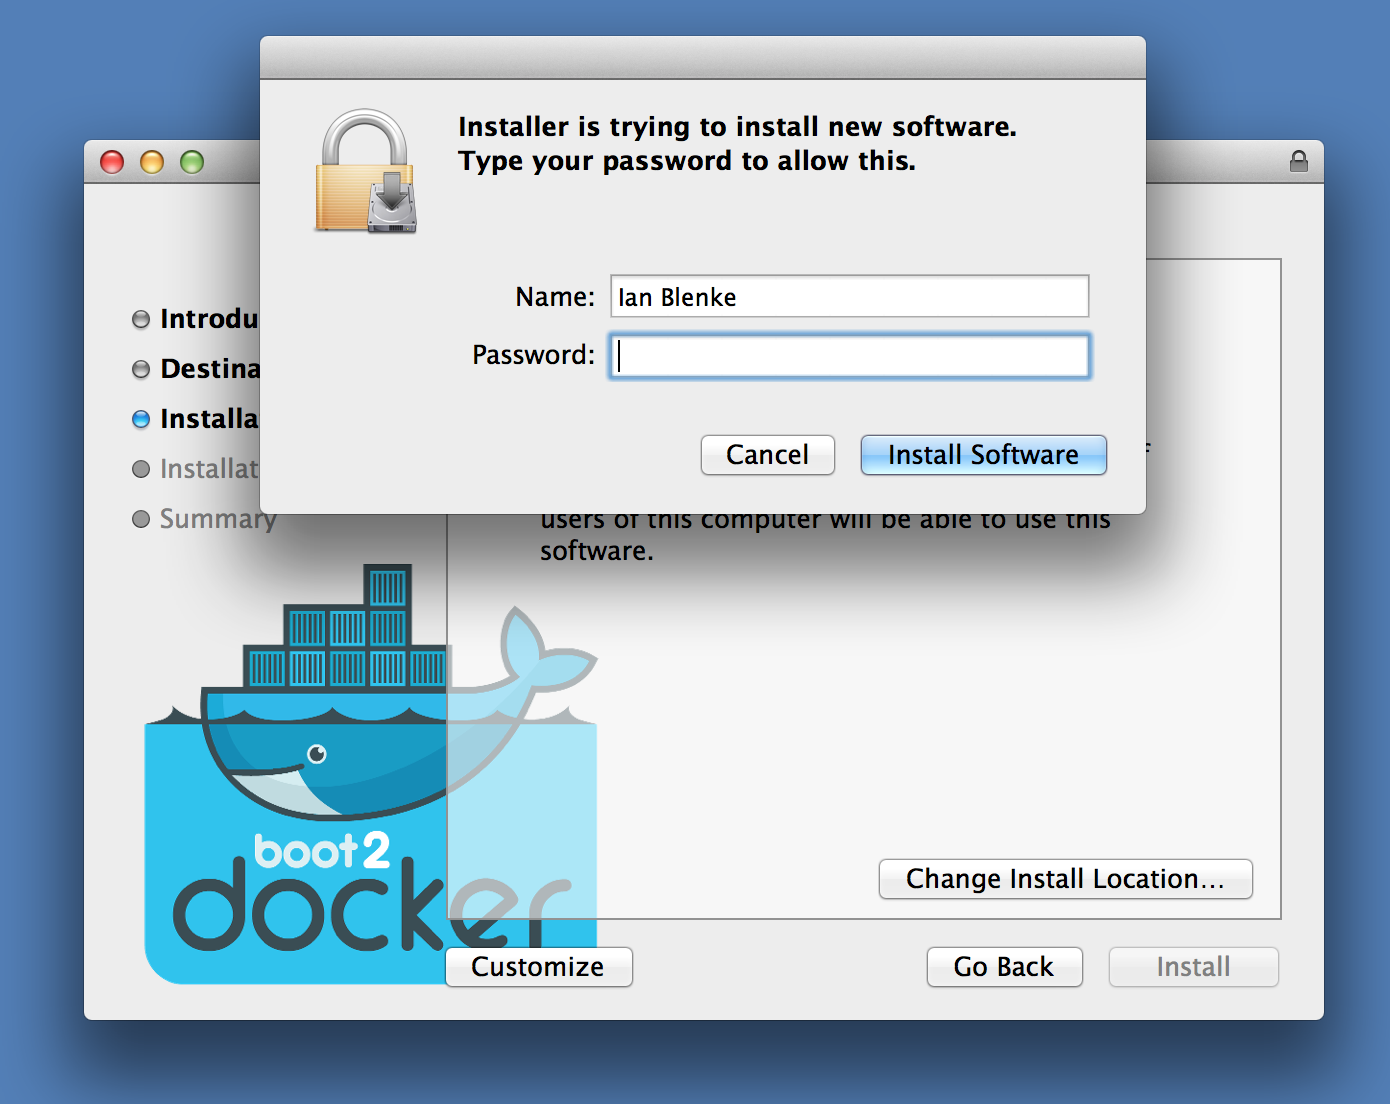 Installer asks for admin rights to install boot2docker